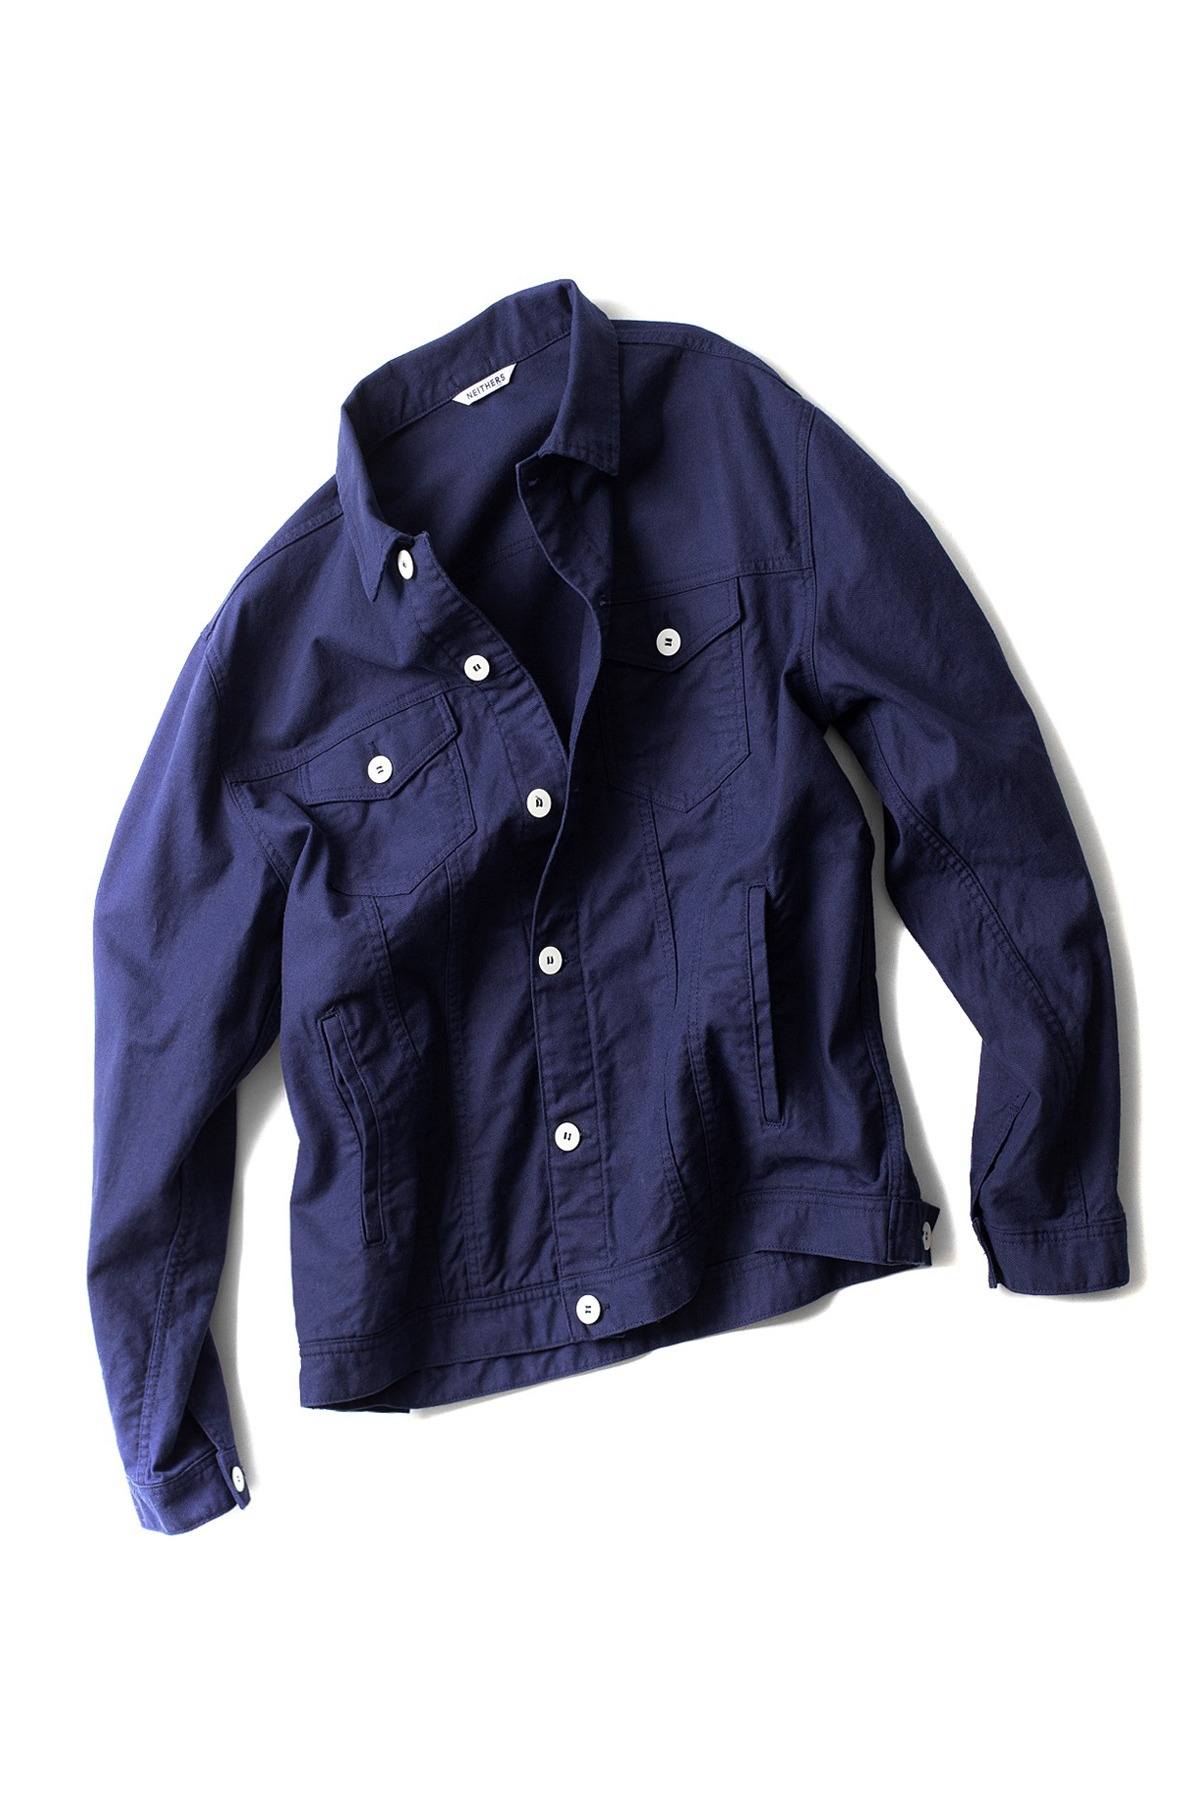 NEITHERS : TYPE-3 Jacket (Navy)